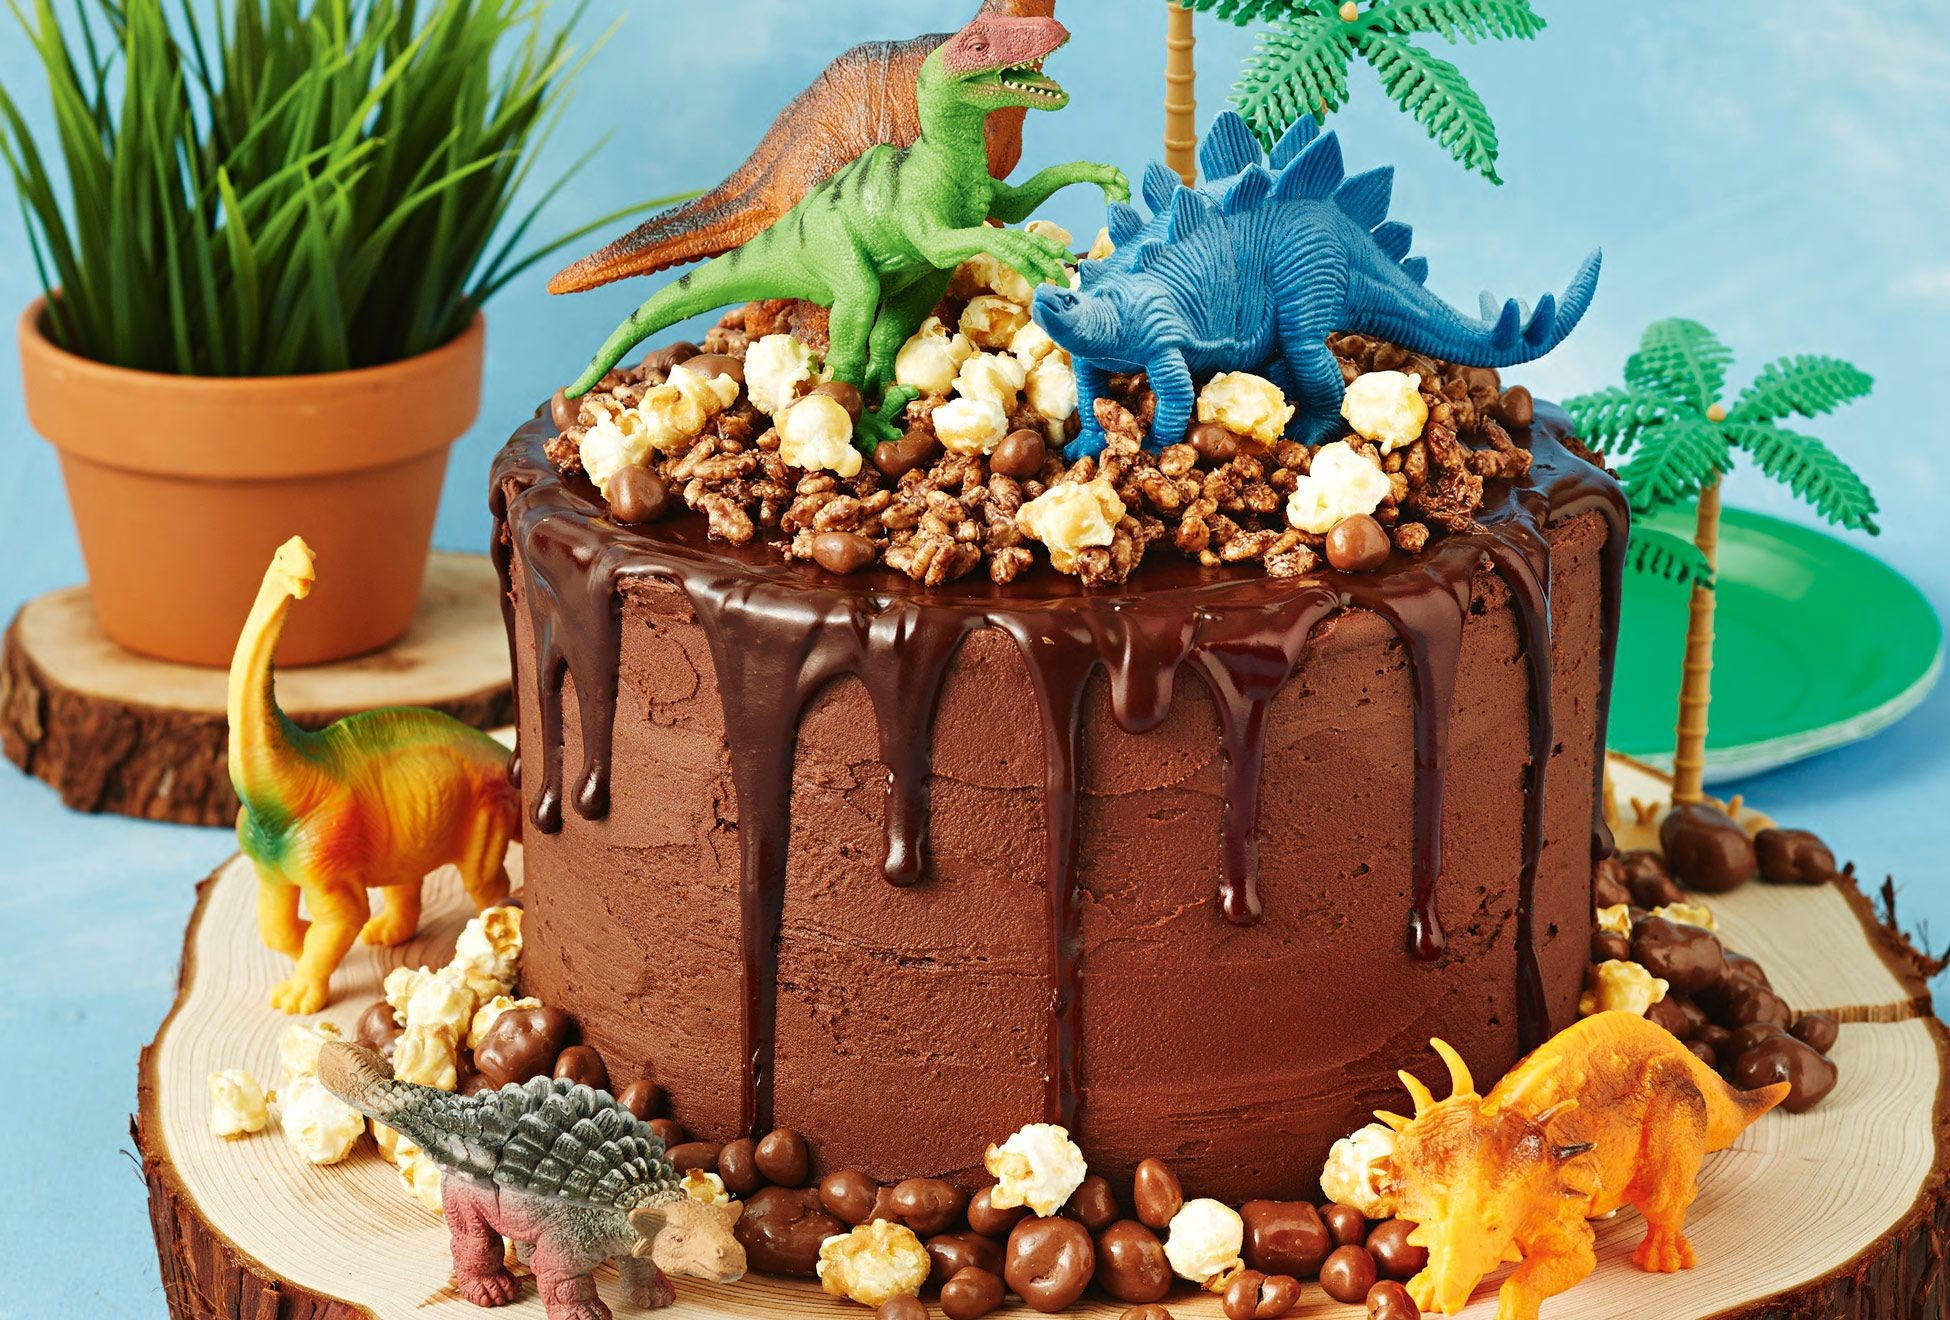 Dinosaur cake be equipped dinosaur train children's birthday cake be equipped dinosaur birthday cake images